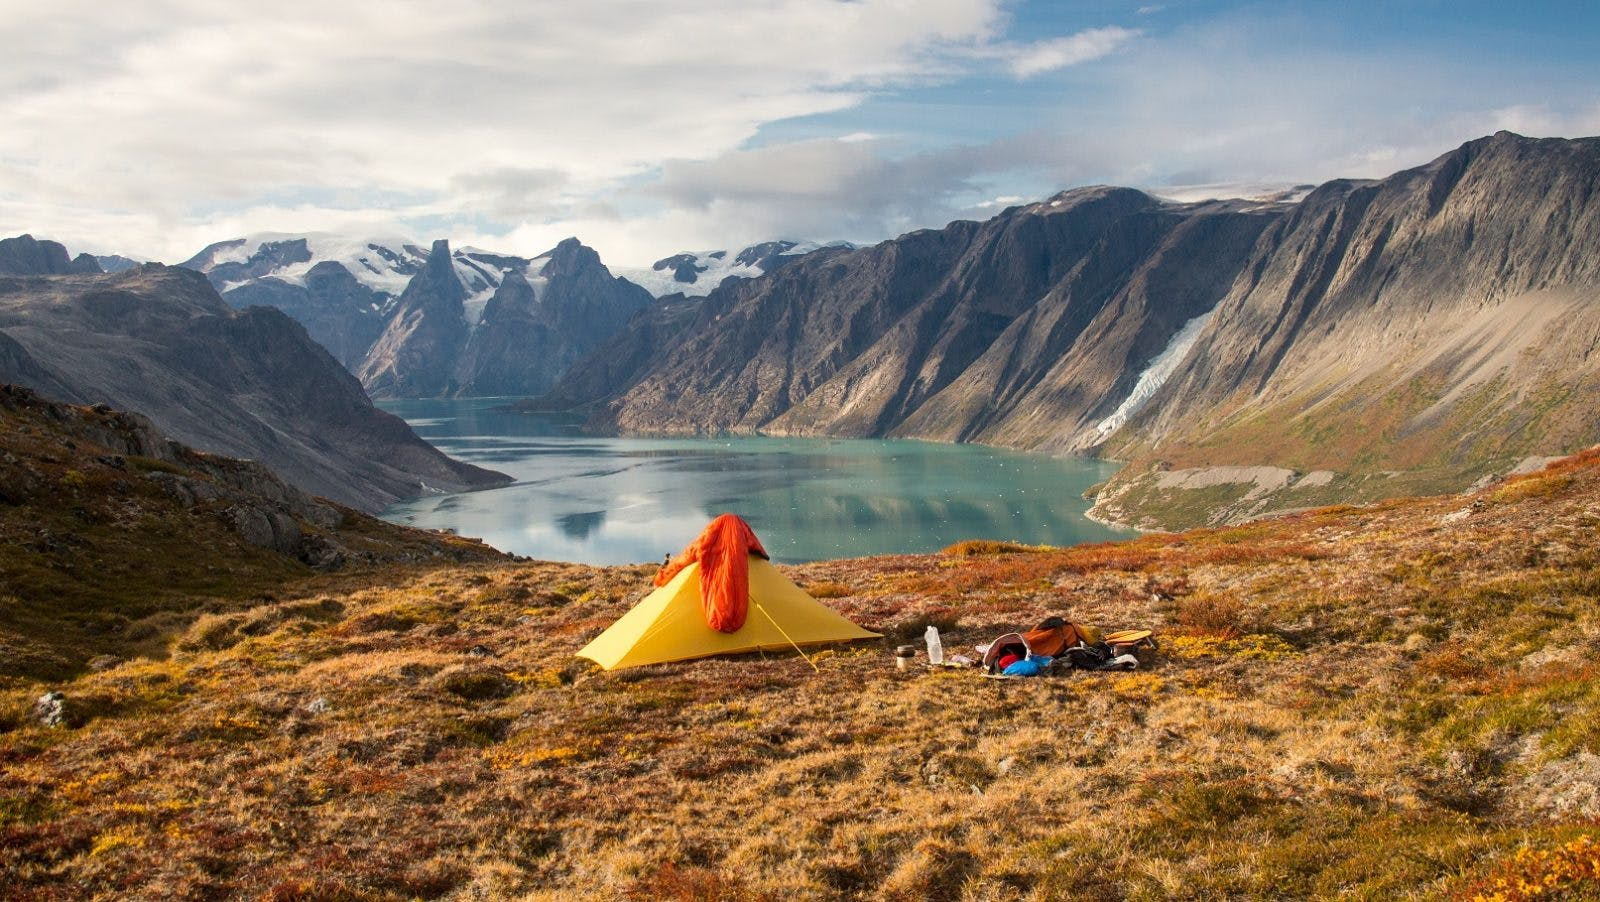 Splendid viby spot during a 5-week solo adventure in West-Greenland.